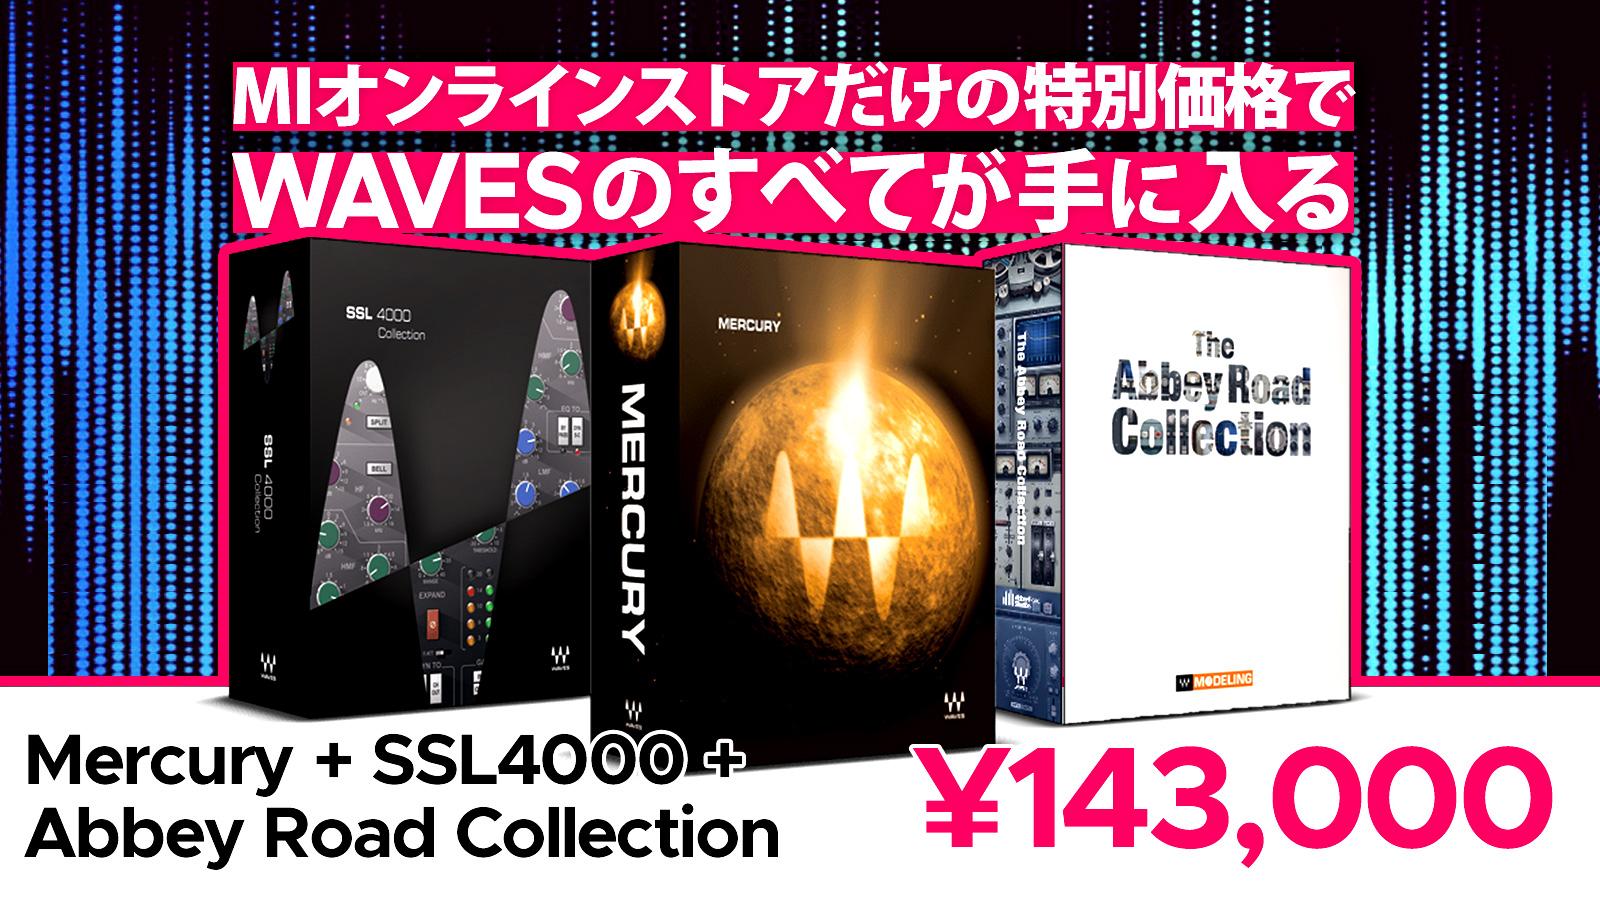 Waves 「真の全部入り」セット Mercury + SSL4000 + Abbey Road Collectionが特価